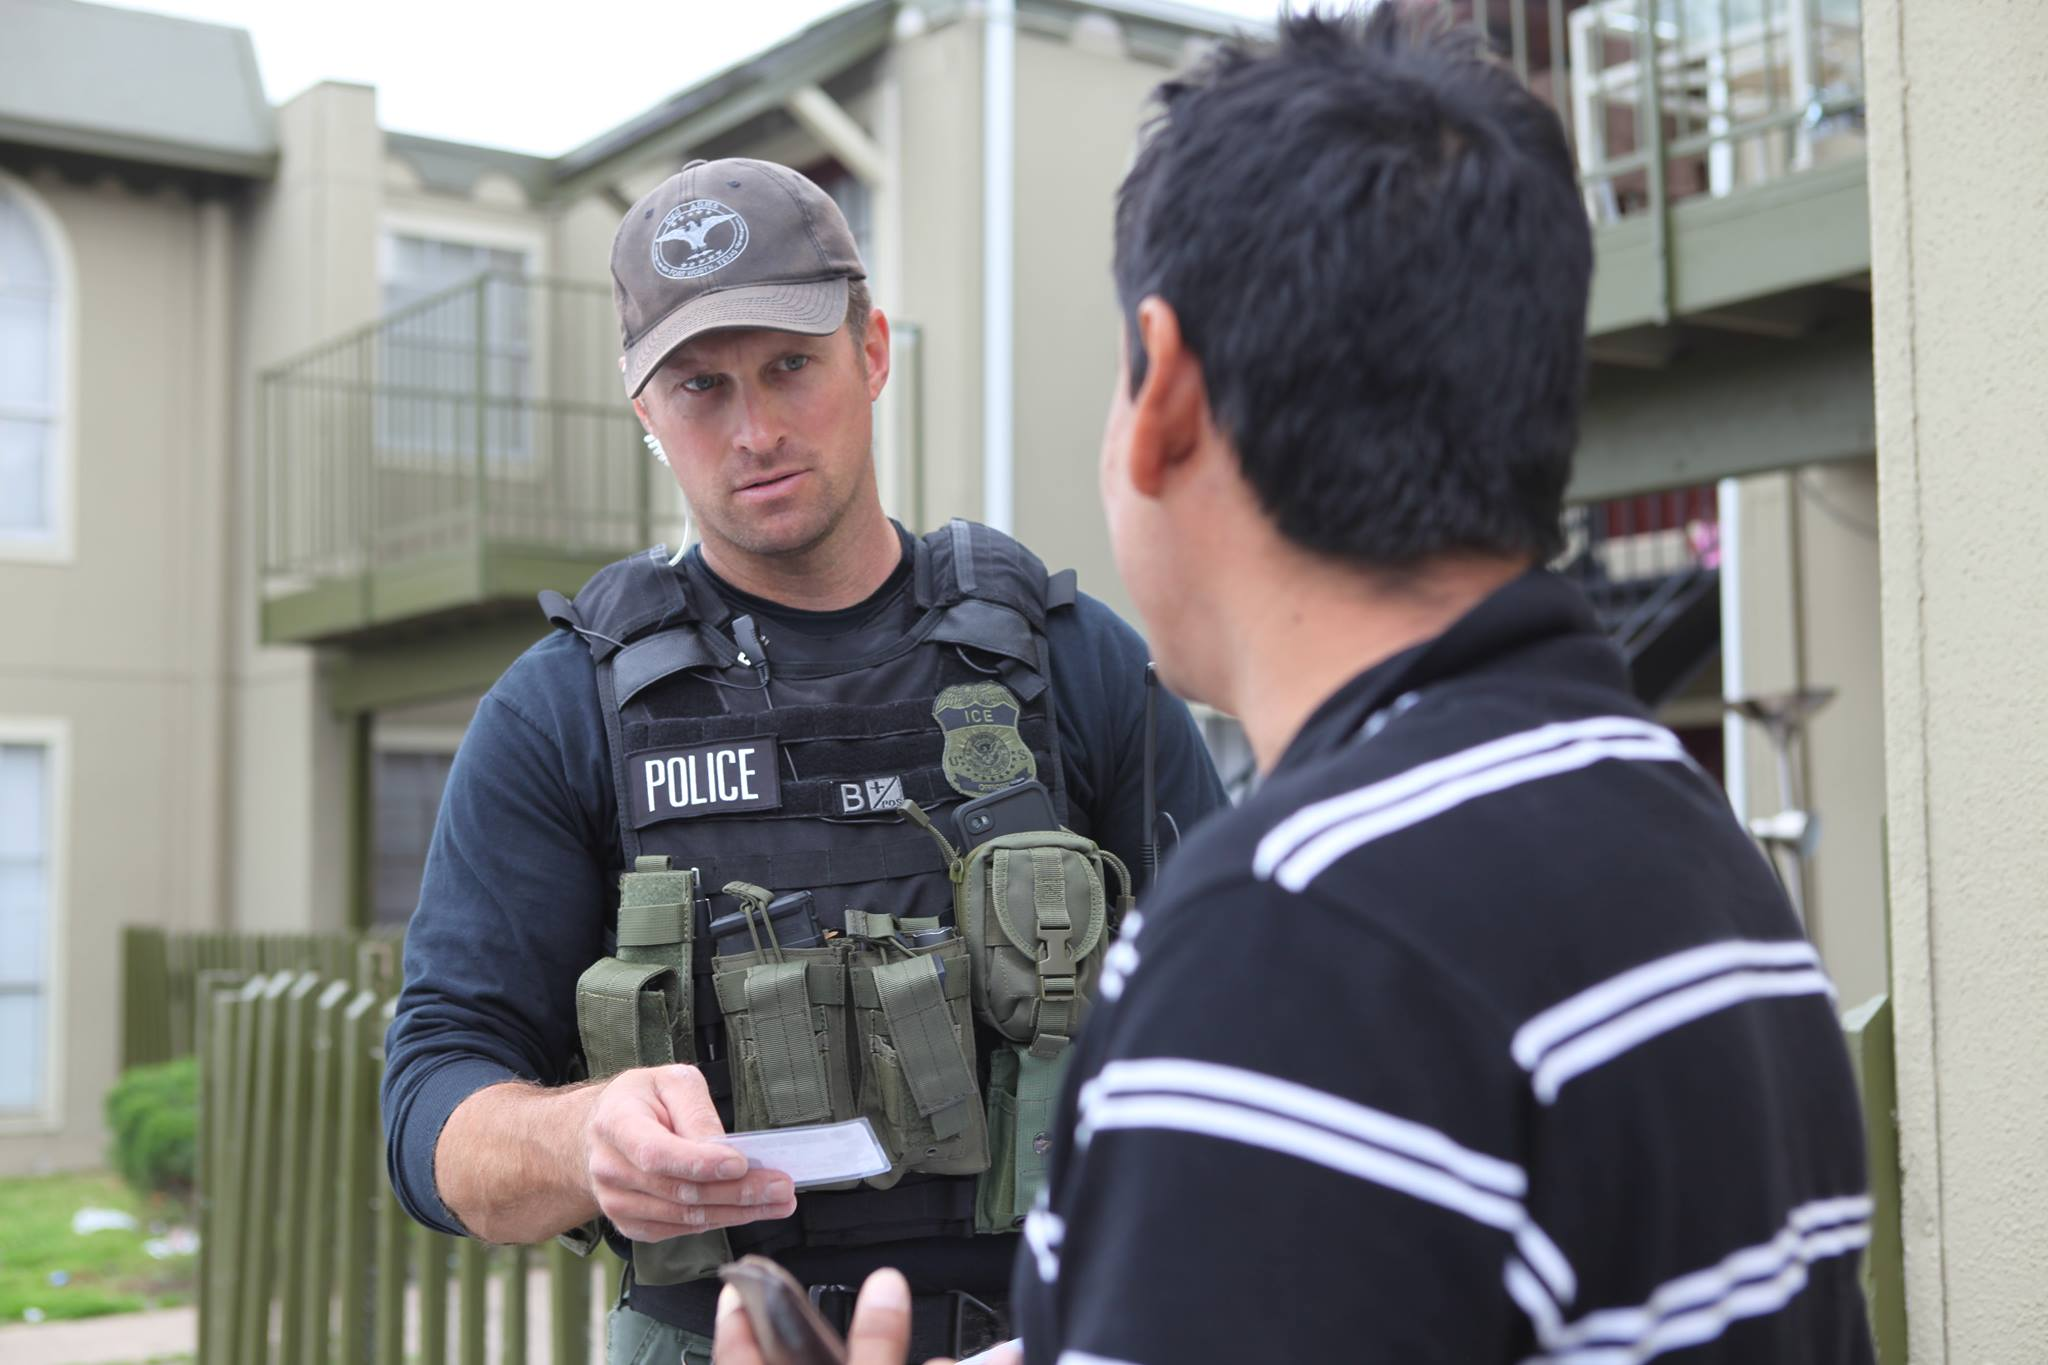 US Immigration and Customs Enforcement agents arrested last week more than 680 people throughout the United States who are a threat to public safety and were in the country illegally, Homeland Security Secretary John Kelly is quoted as saying in a release on Monday. (Photo: Immigration And Customs Enforcement (ICE)/Facebook)